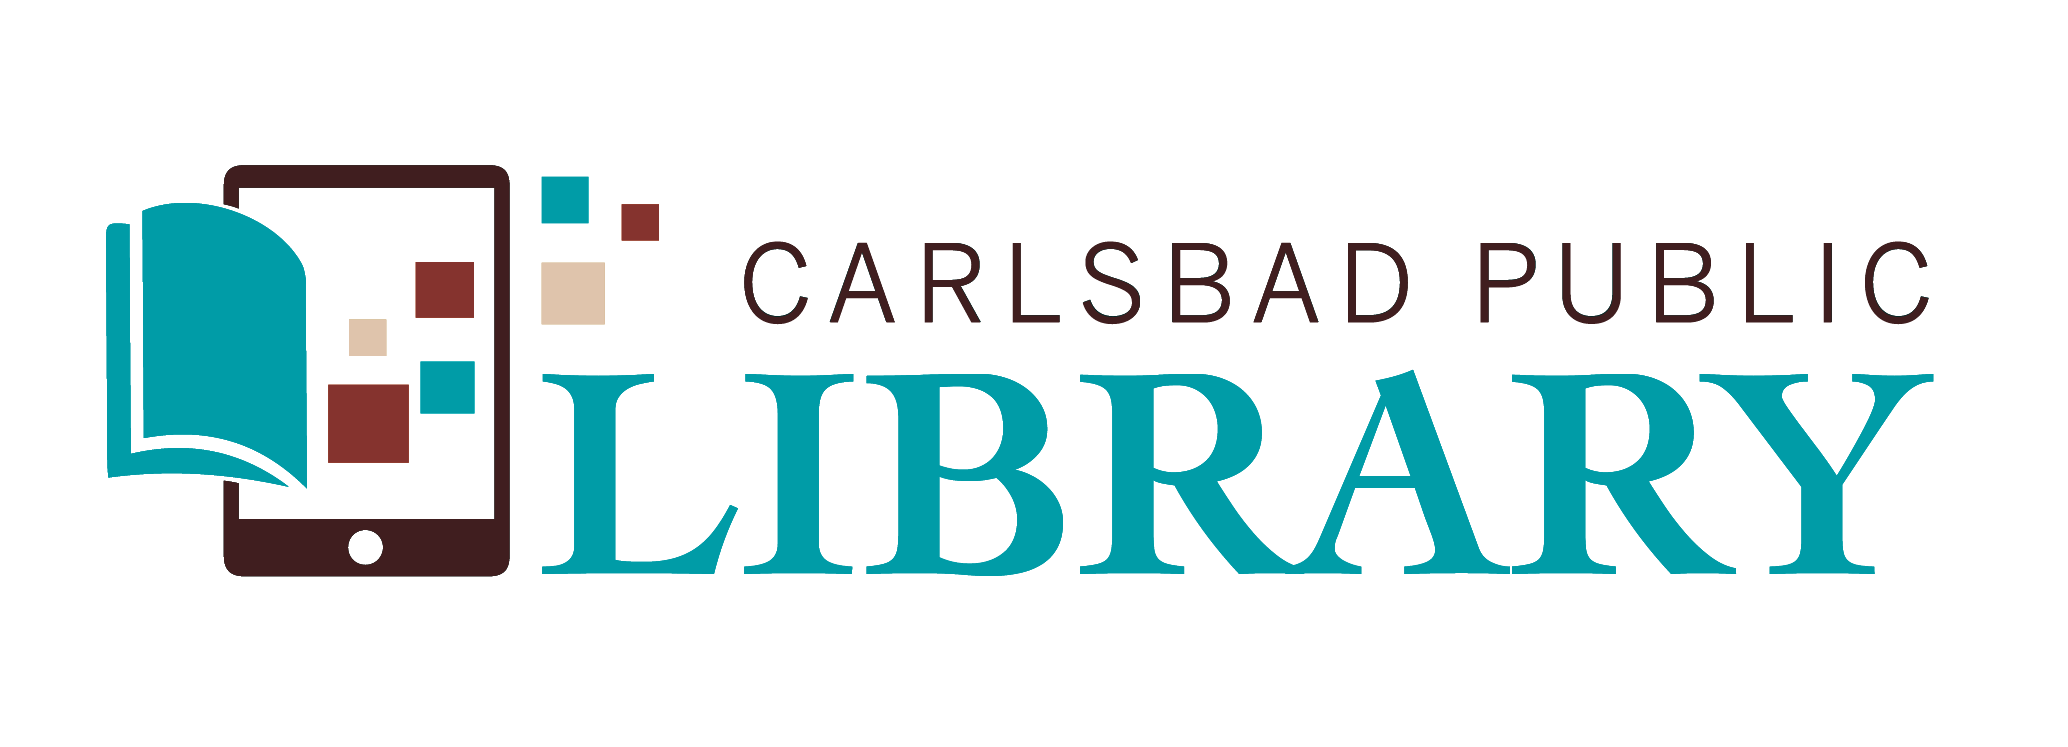 Mother Goose @ Carlsbad Public Library